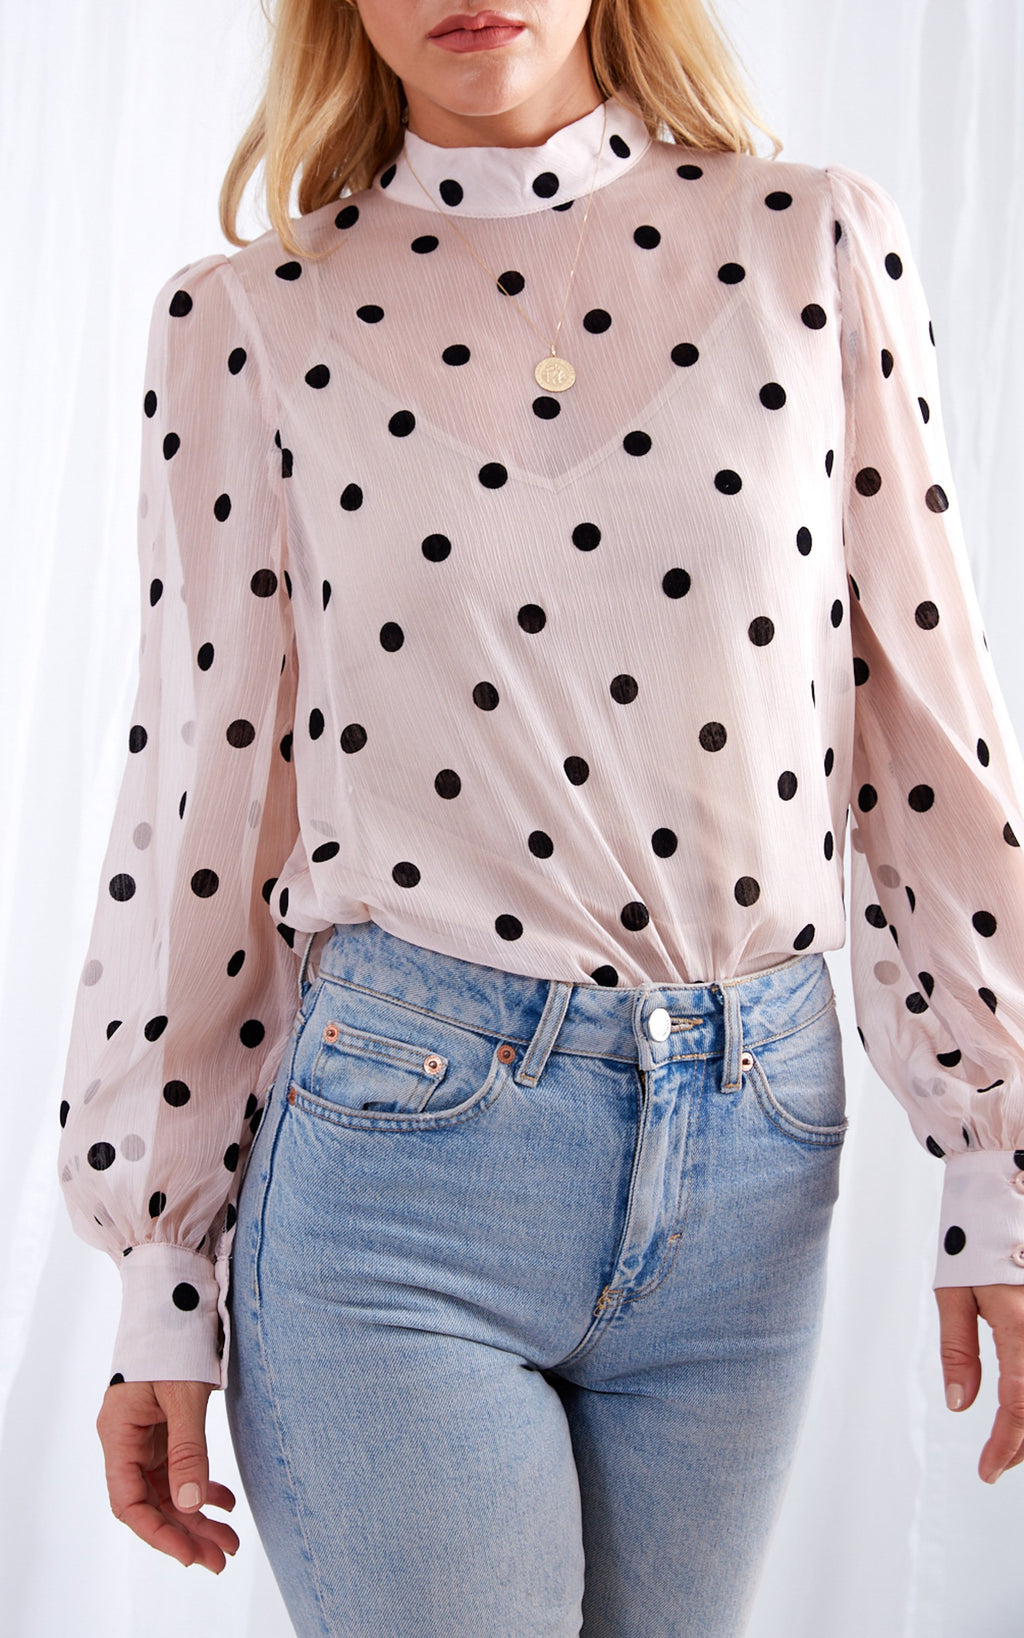 AMBRE sheer polka dot blouse - pink